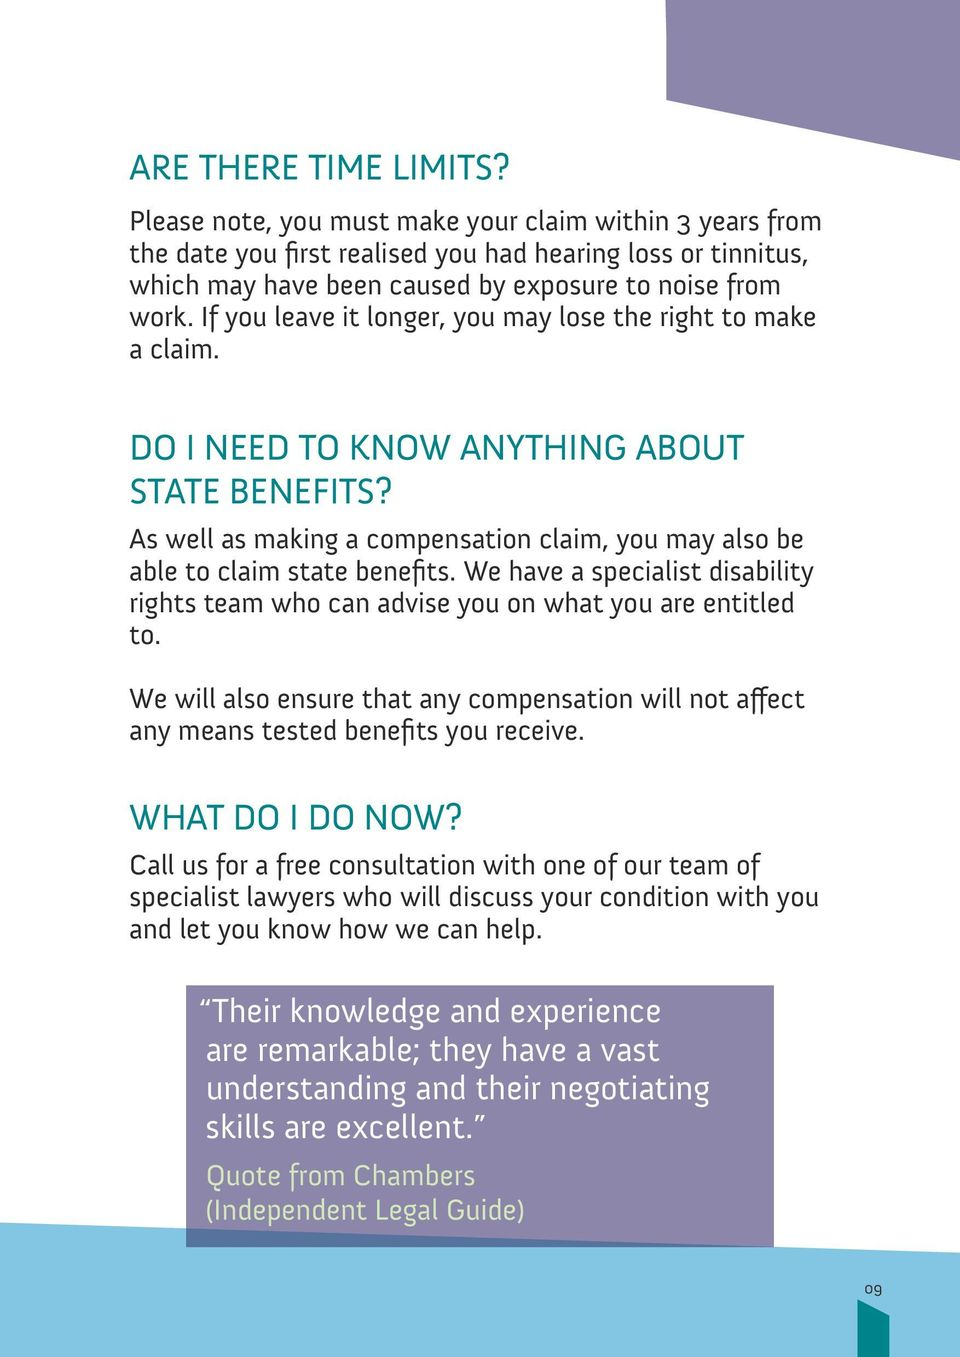 If you leave it longer, you may lose the right to make a claim. DO I NEED TO KNOW ANYTHING ABOUT STATE BENEFITS? As well as making a compensation claim, you may also be able to claim state benefits.